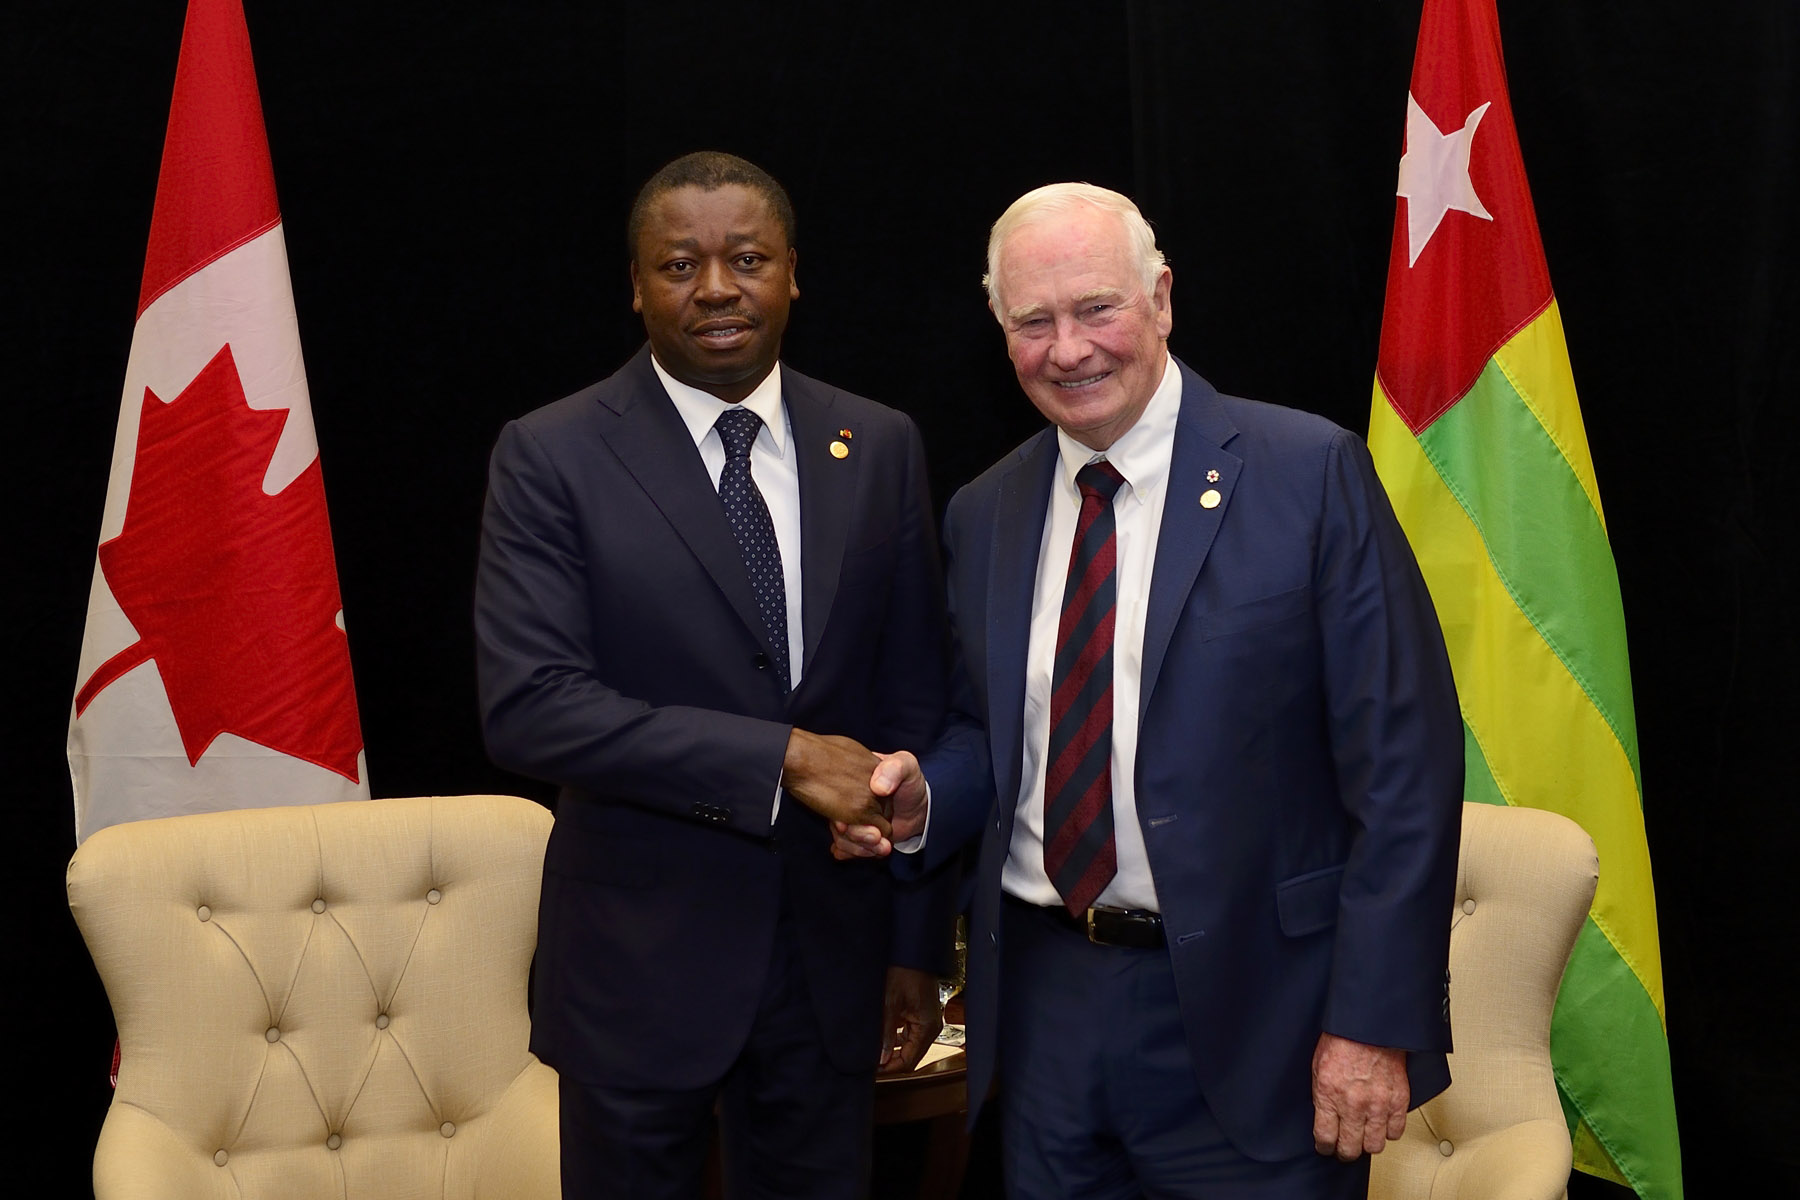 Afterwards, he met with Faure Essozimna Gnassingbé, President of the Republic of Togo.